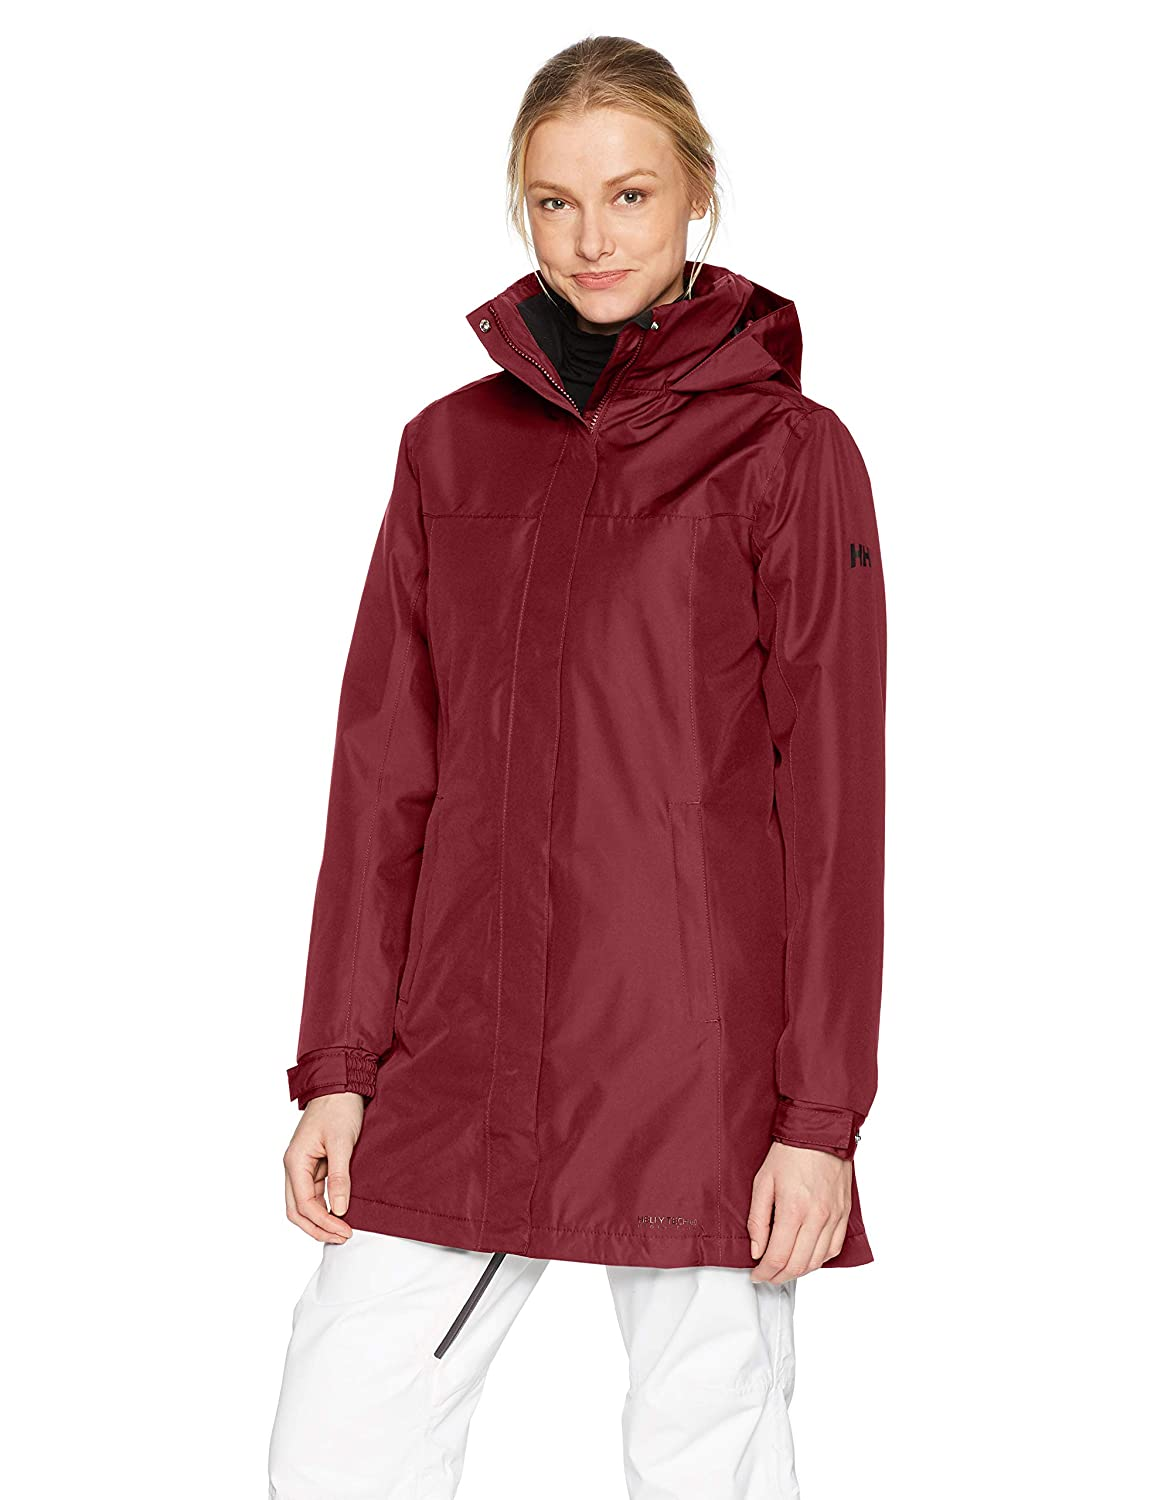 146 Cabernet Helly Hansen Women's Aden Long Insulated Rain Jacket